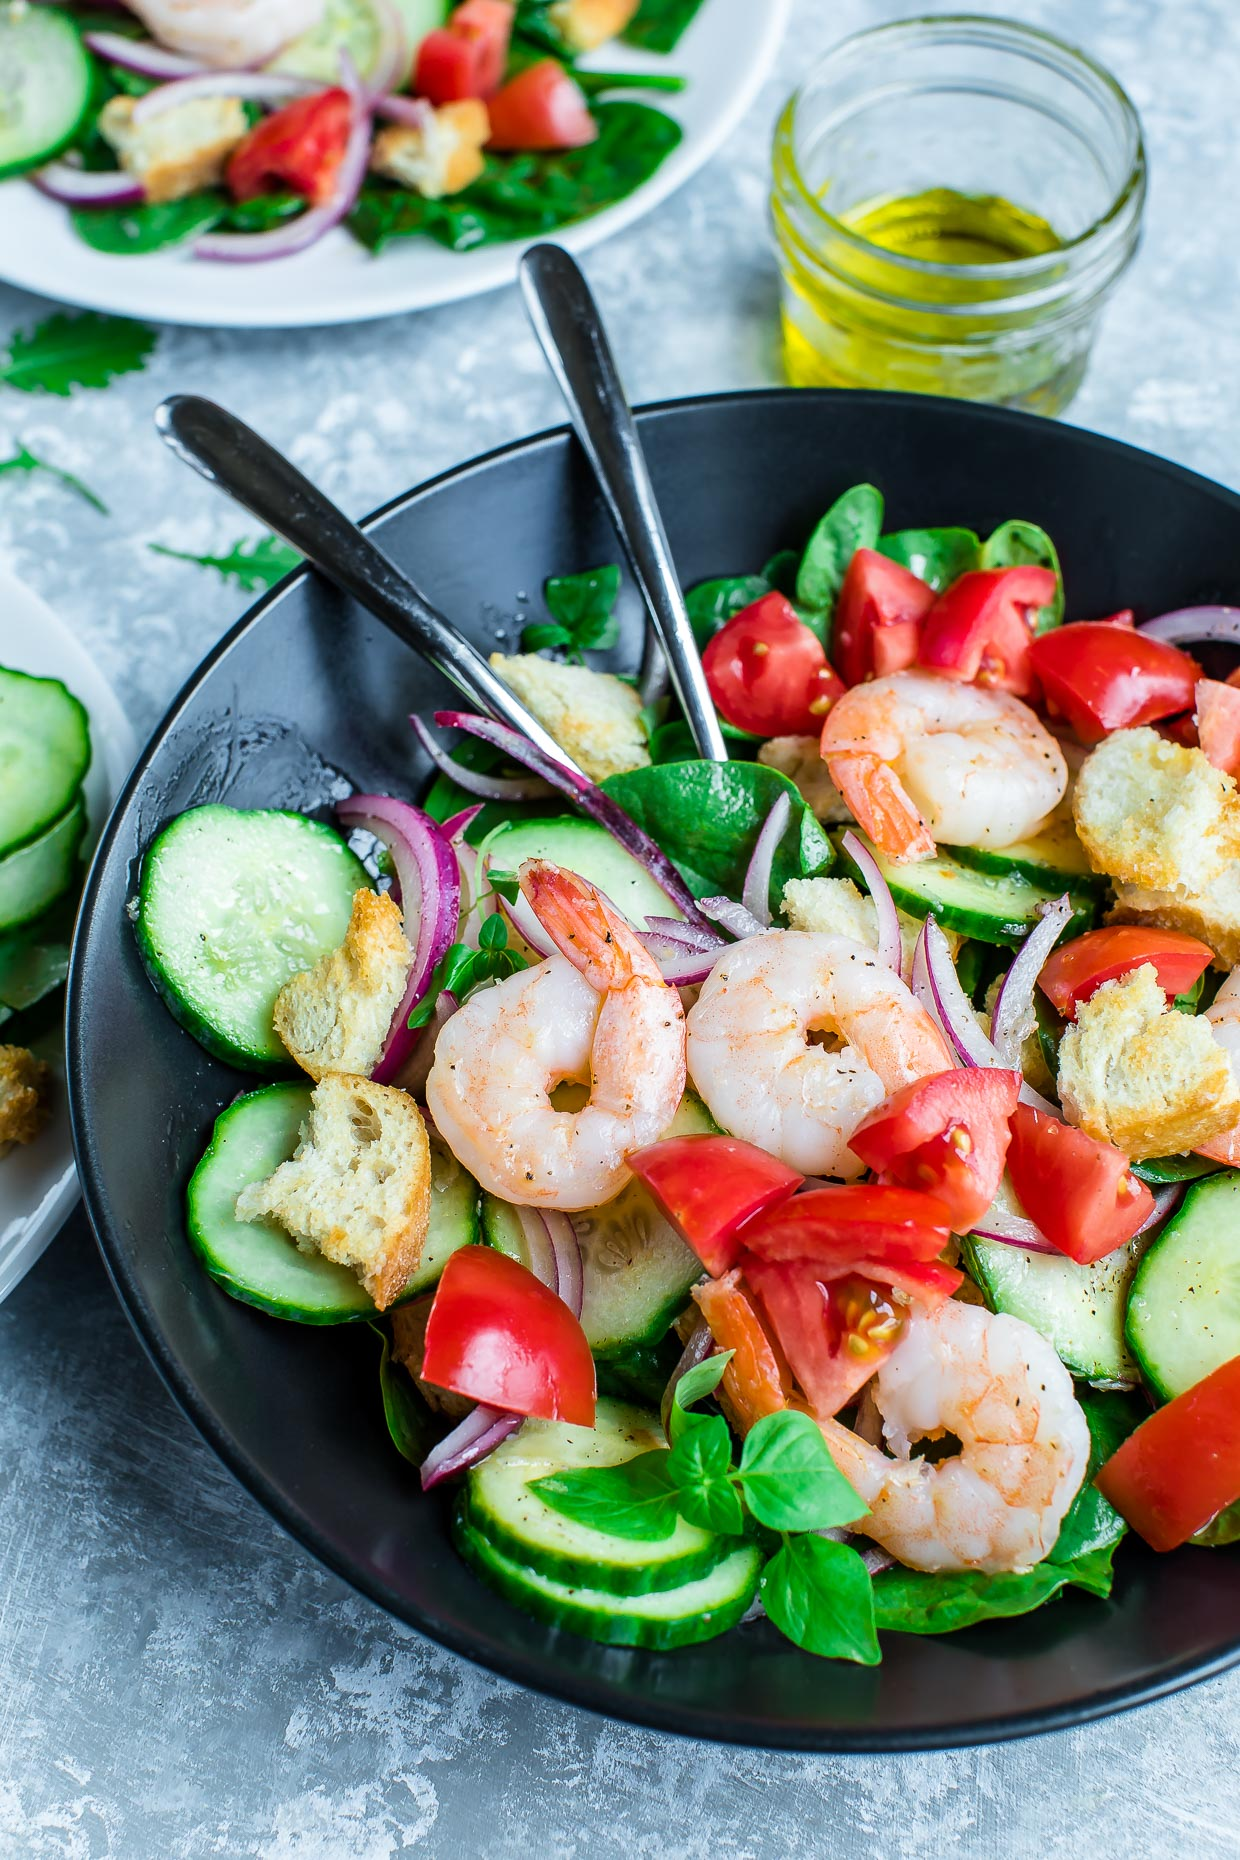 Shrimp Panzanella Spinach Salad is a tasty twist on the classic Tuscan bread salad. Light, healthy, and totally delicious!